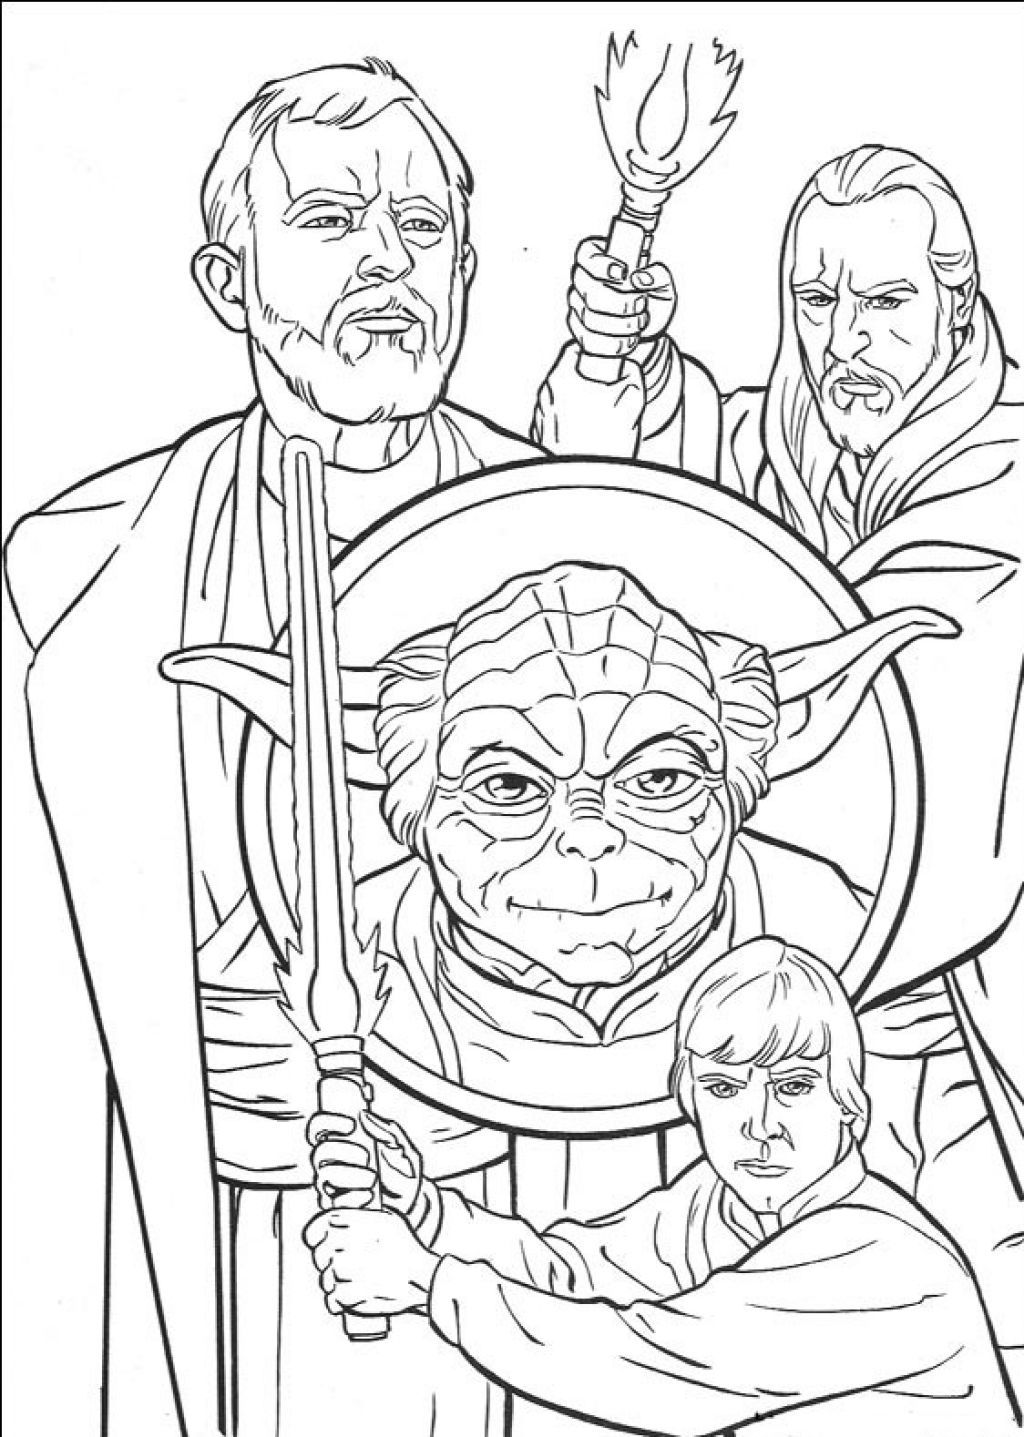 Star Wars Coloring Pages Free Printable Star Wars Coloring Pages Star Wars Coloring Book Star Wars Colors Star Coloring Pages